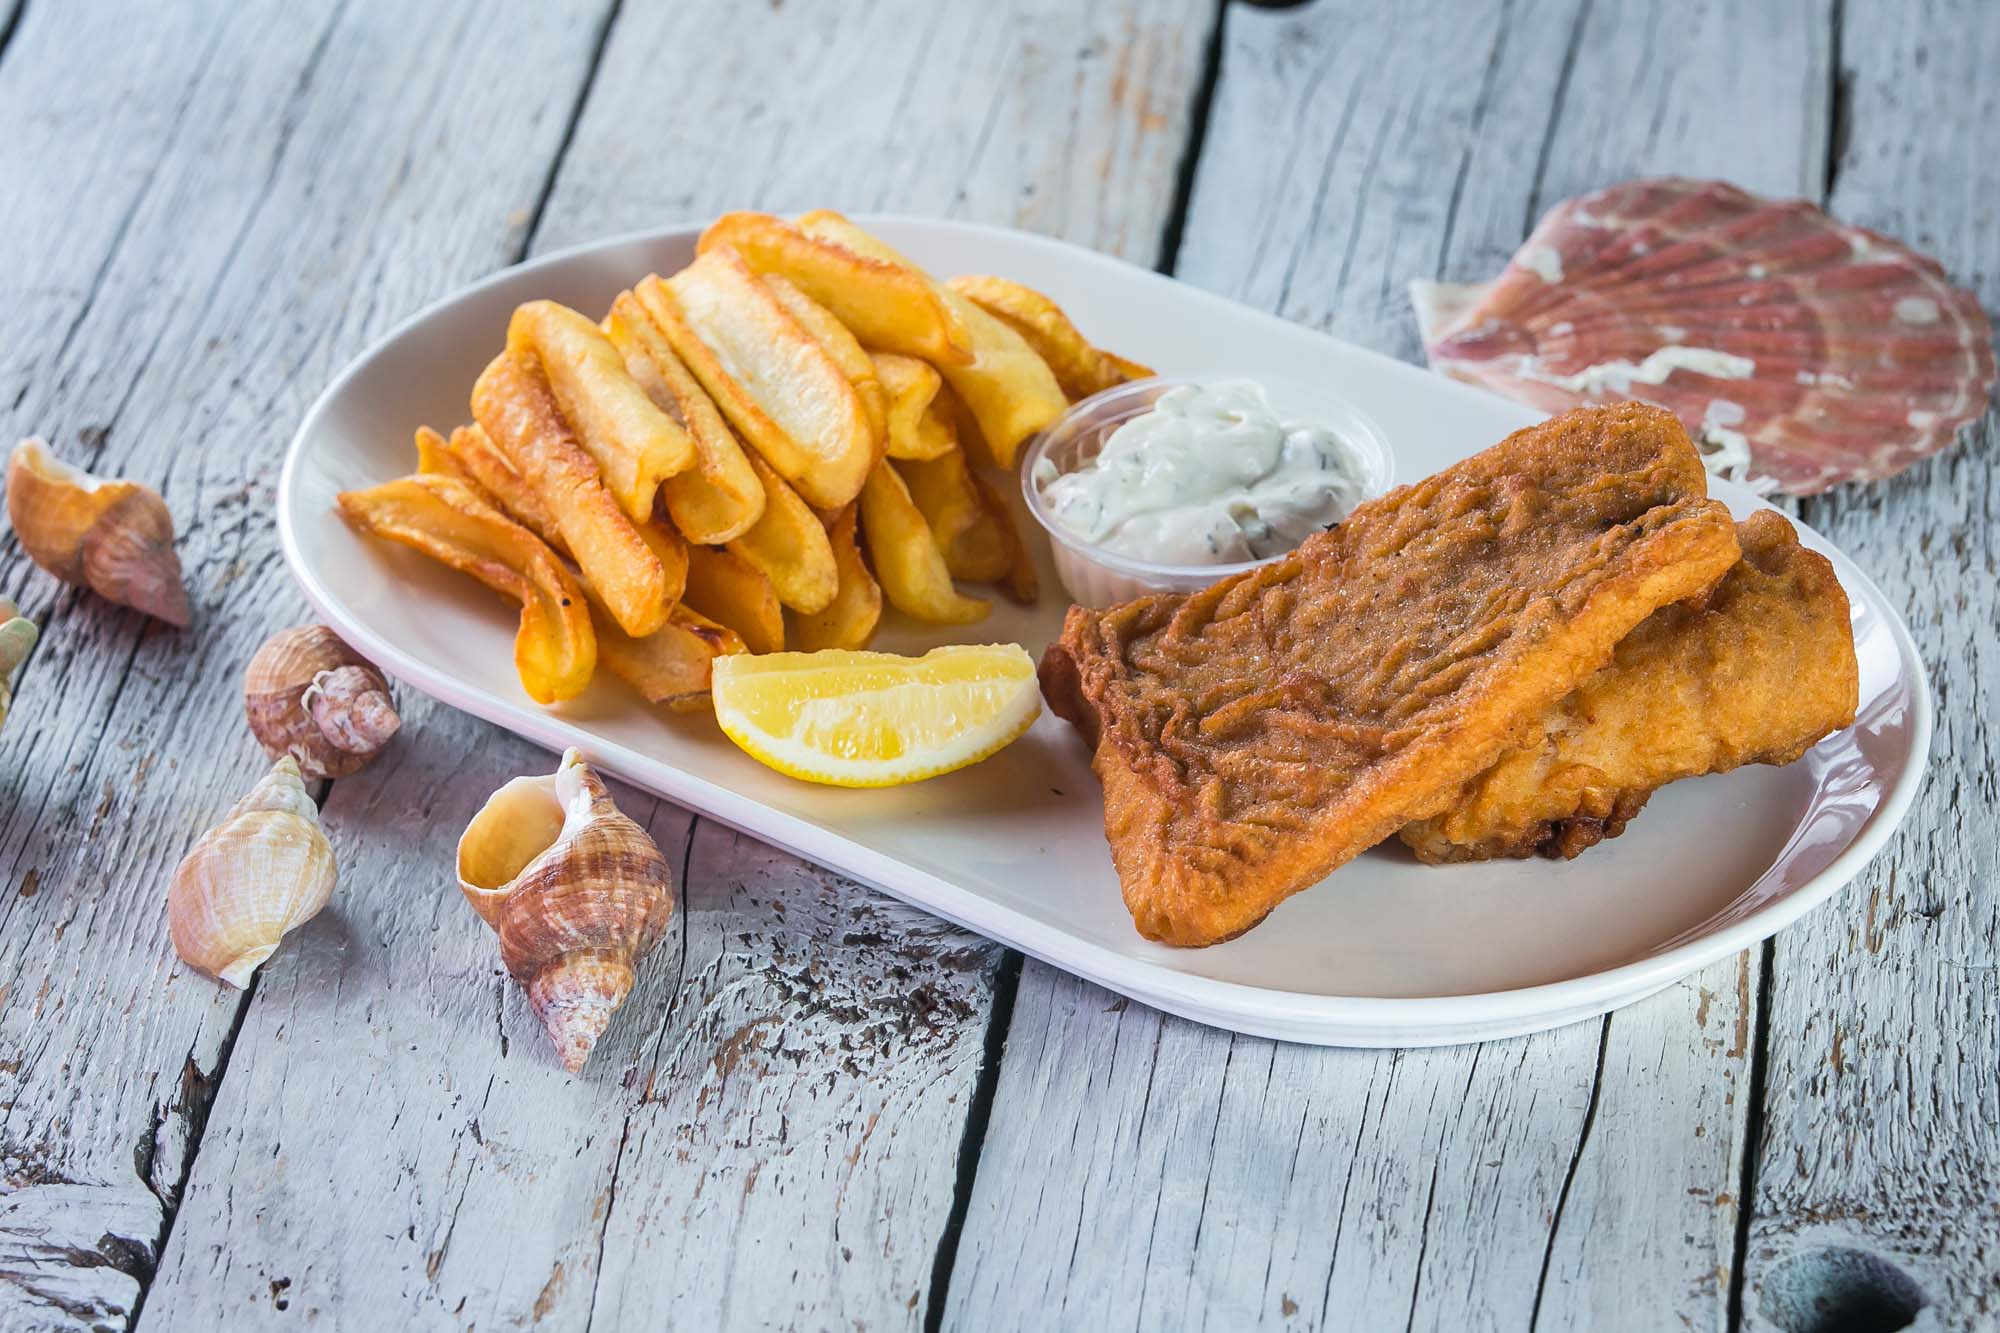 fish_and_chips_10.jpg